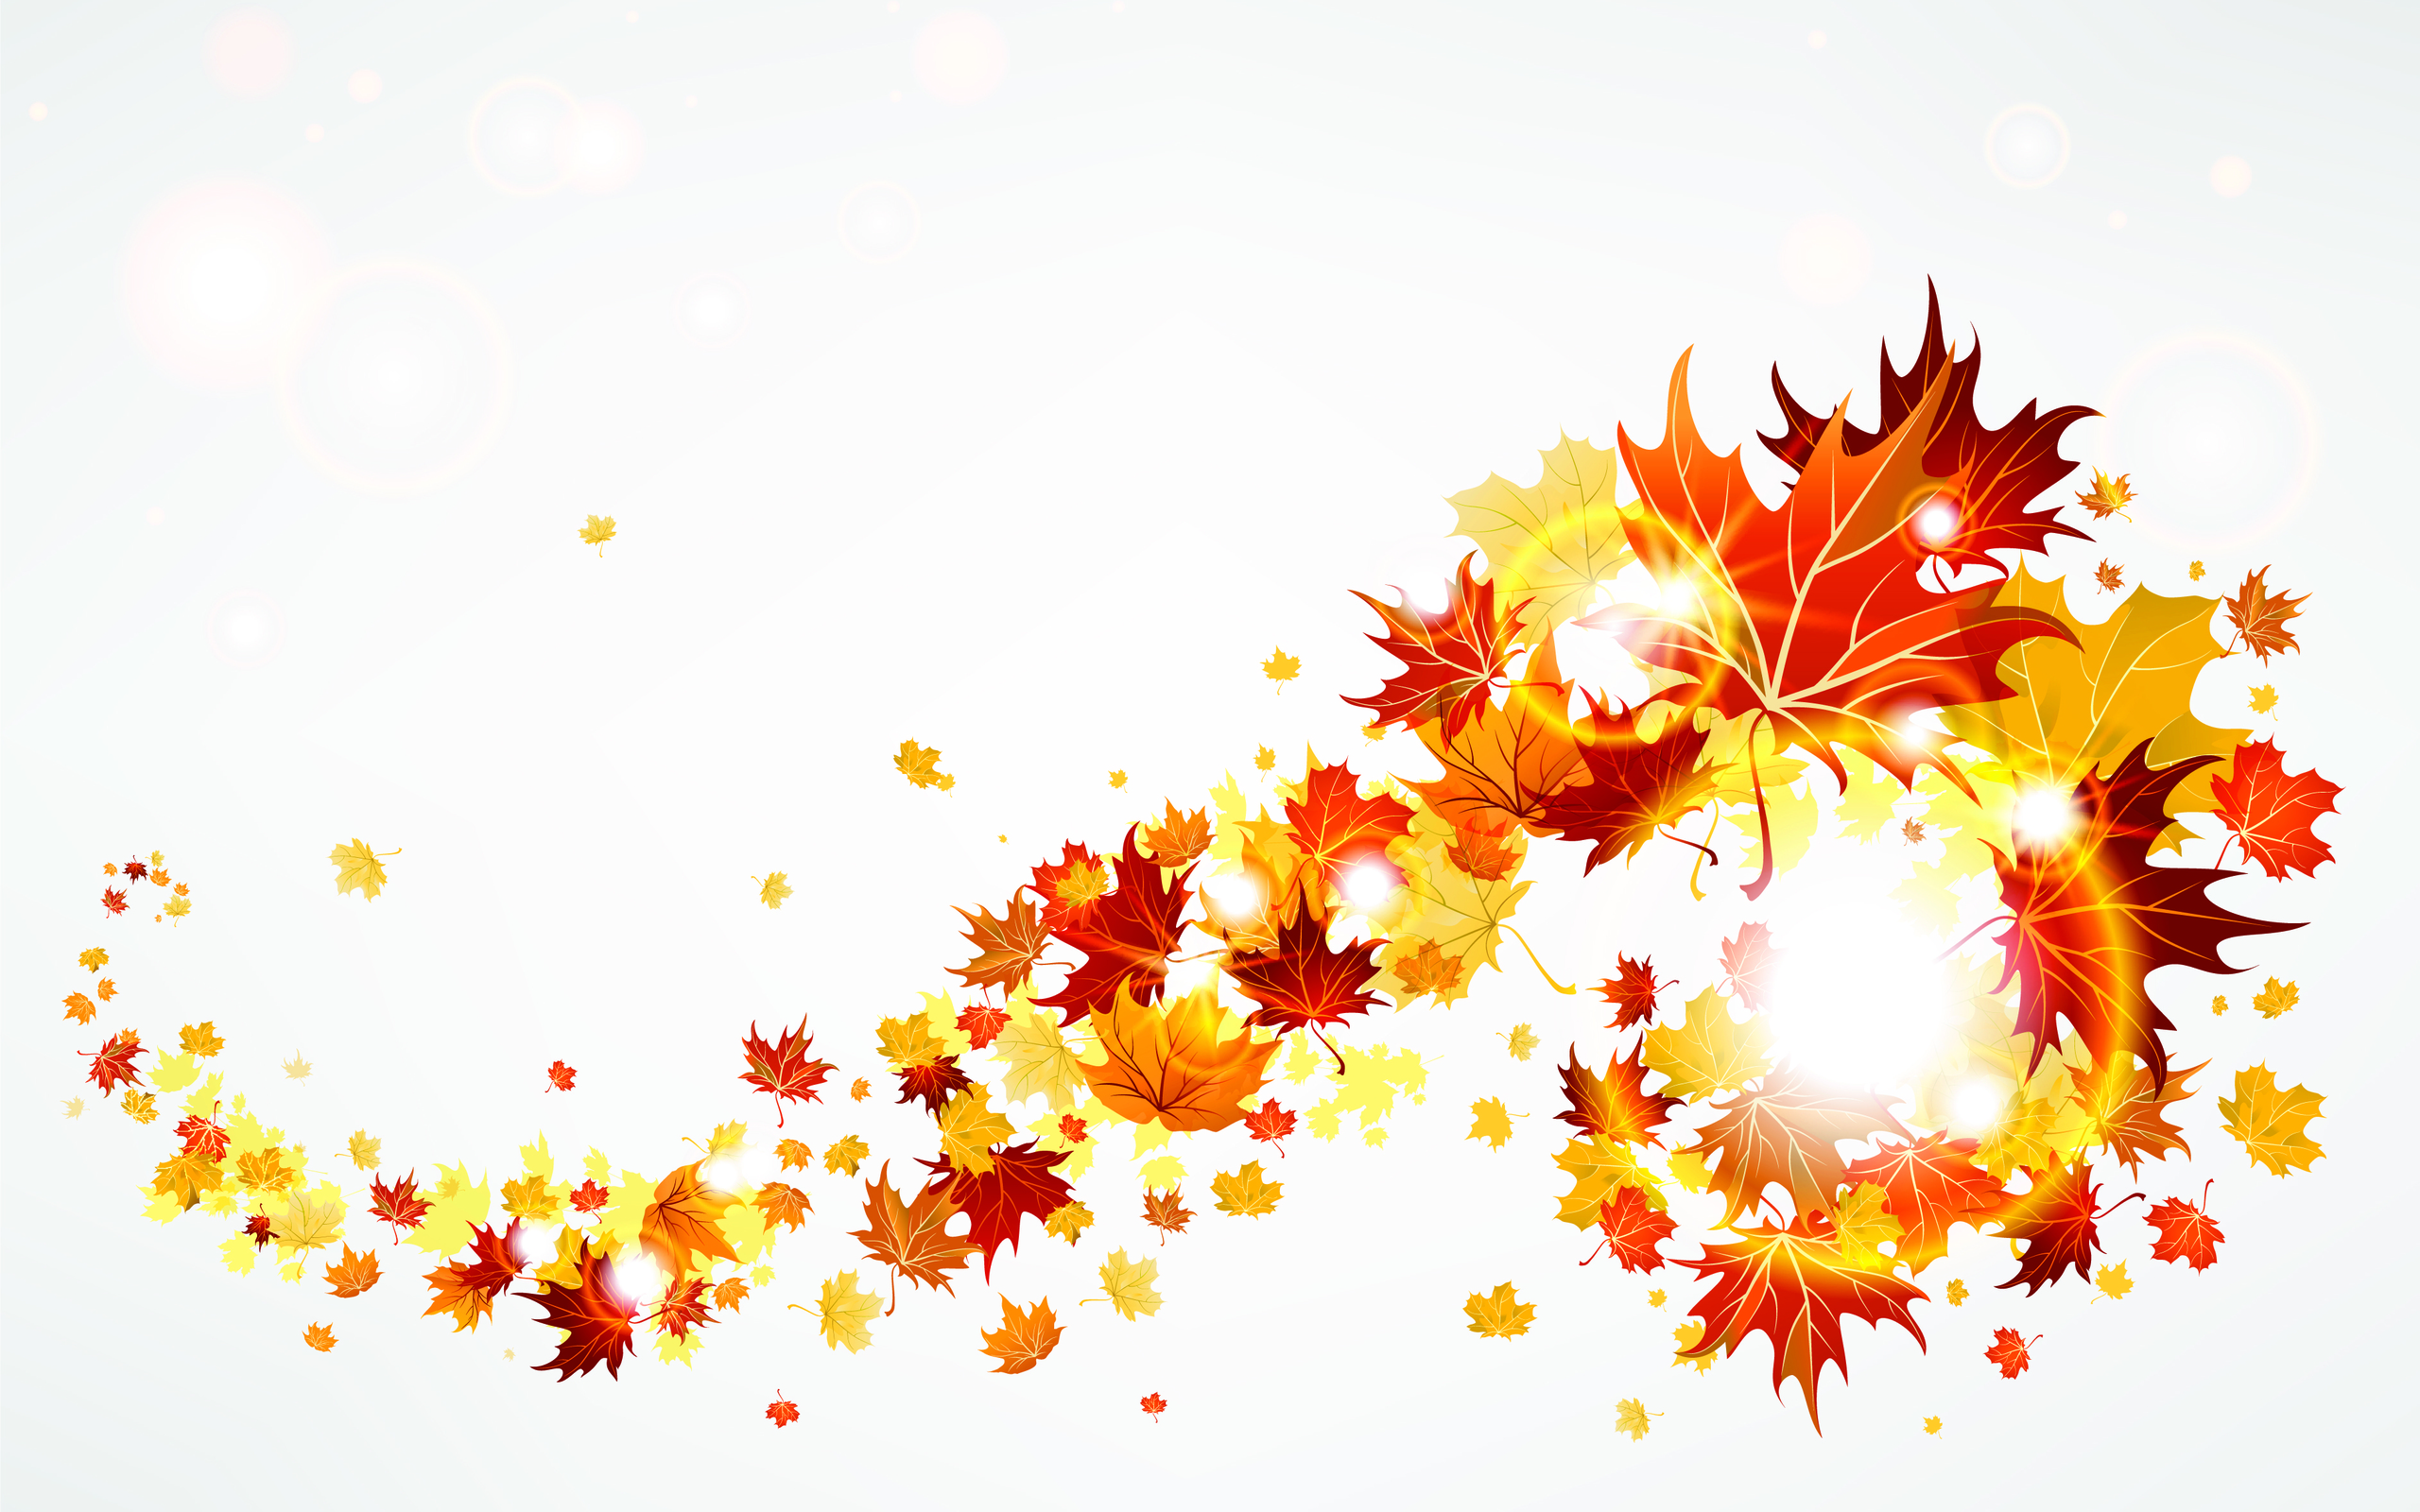 Autumn leaves clipart images.